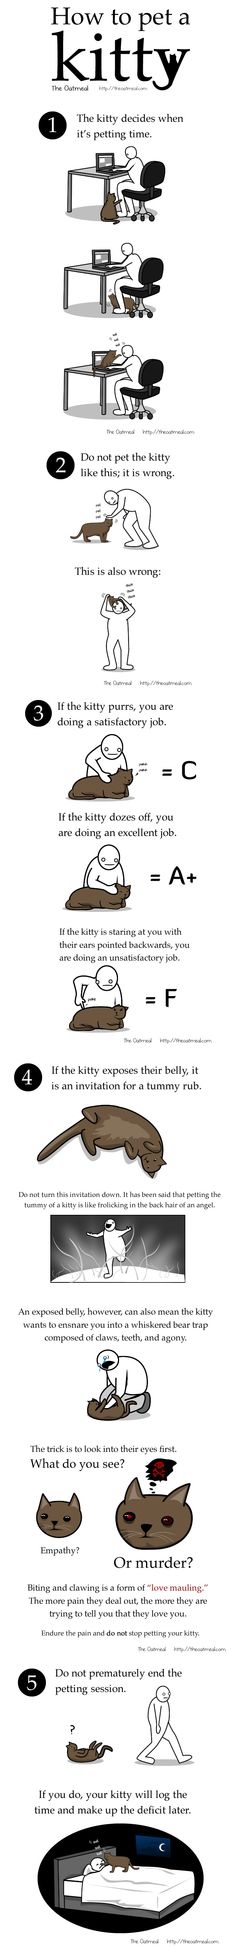 kitty petting rules